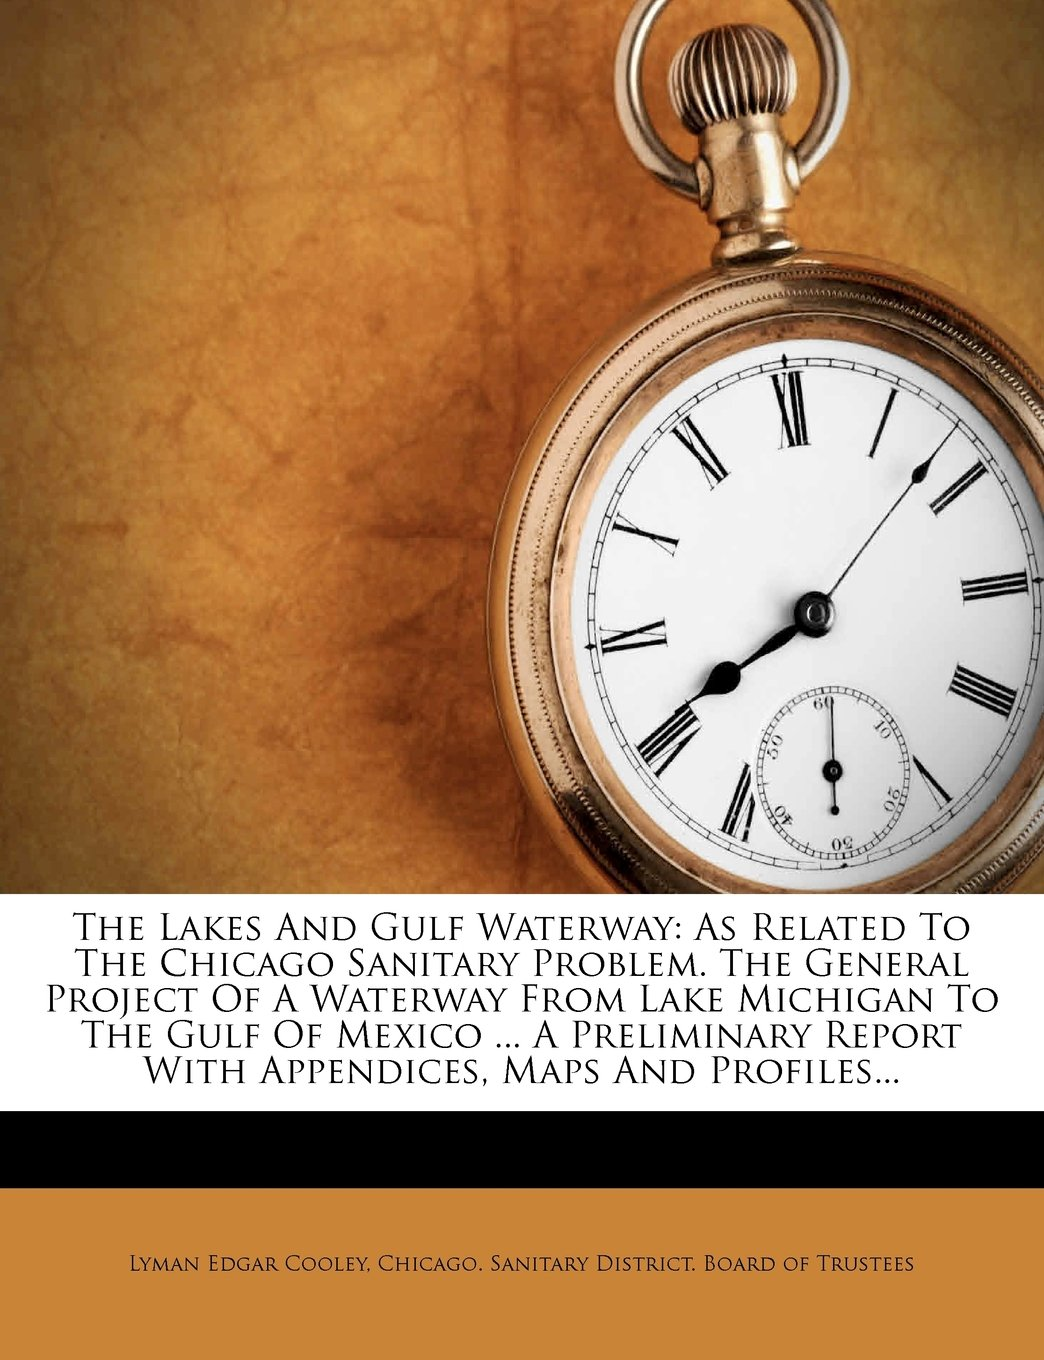 Download The Lakes And Gulf Waterway: As Related To The Chicago Sanitary Problem. The General Project Of A Waterway From Lake Michigan To The Gulf Of Mexico ... Report With Appendices, Maps And Profiles... ebook